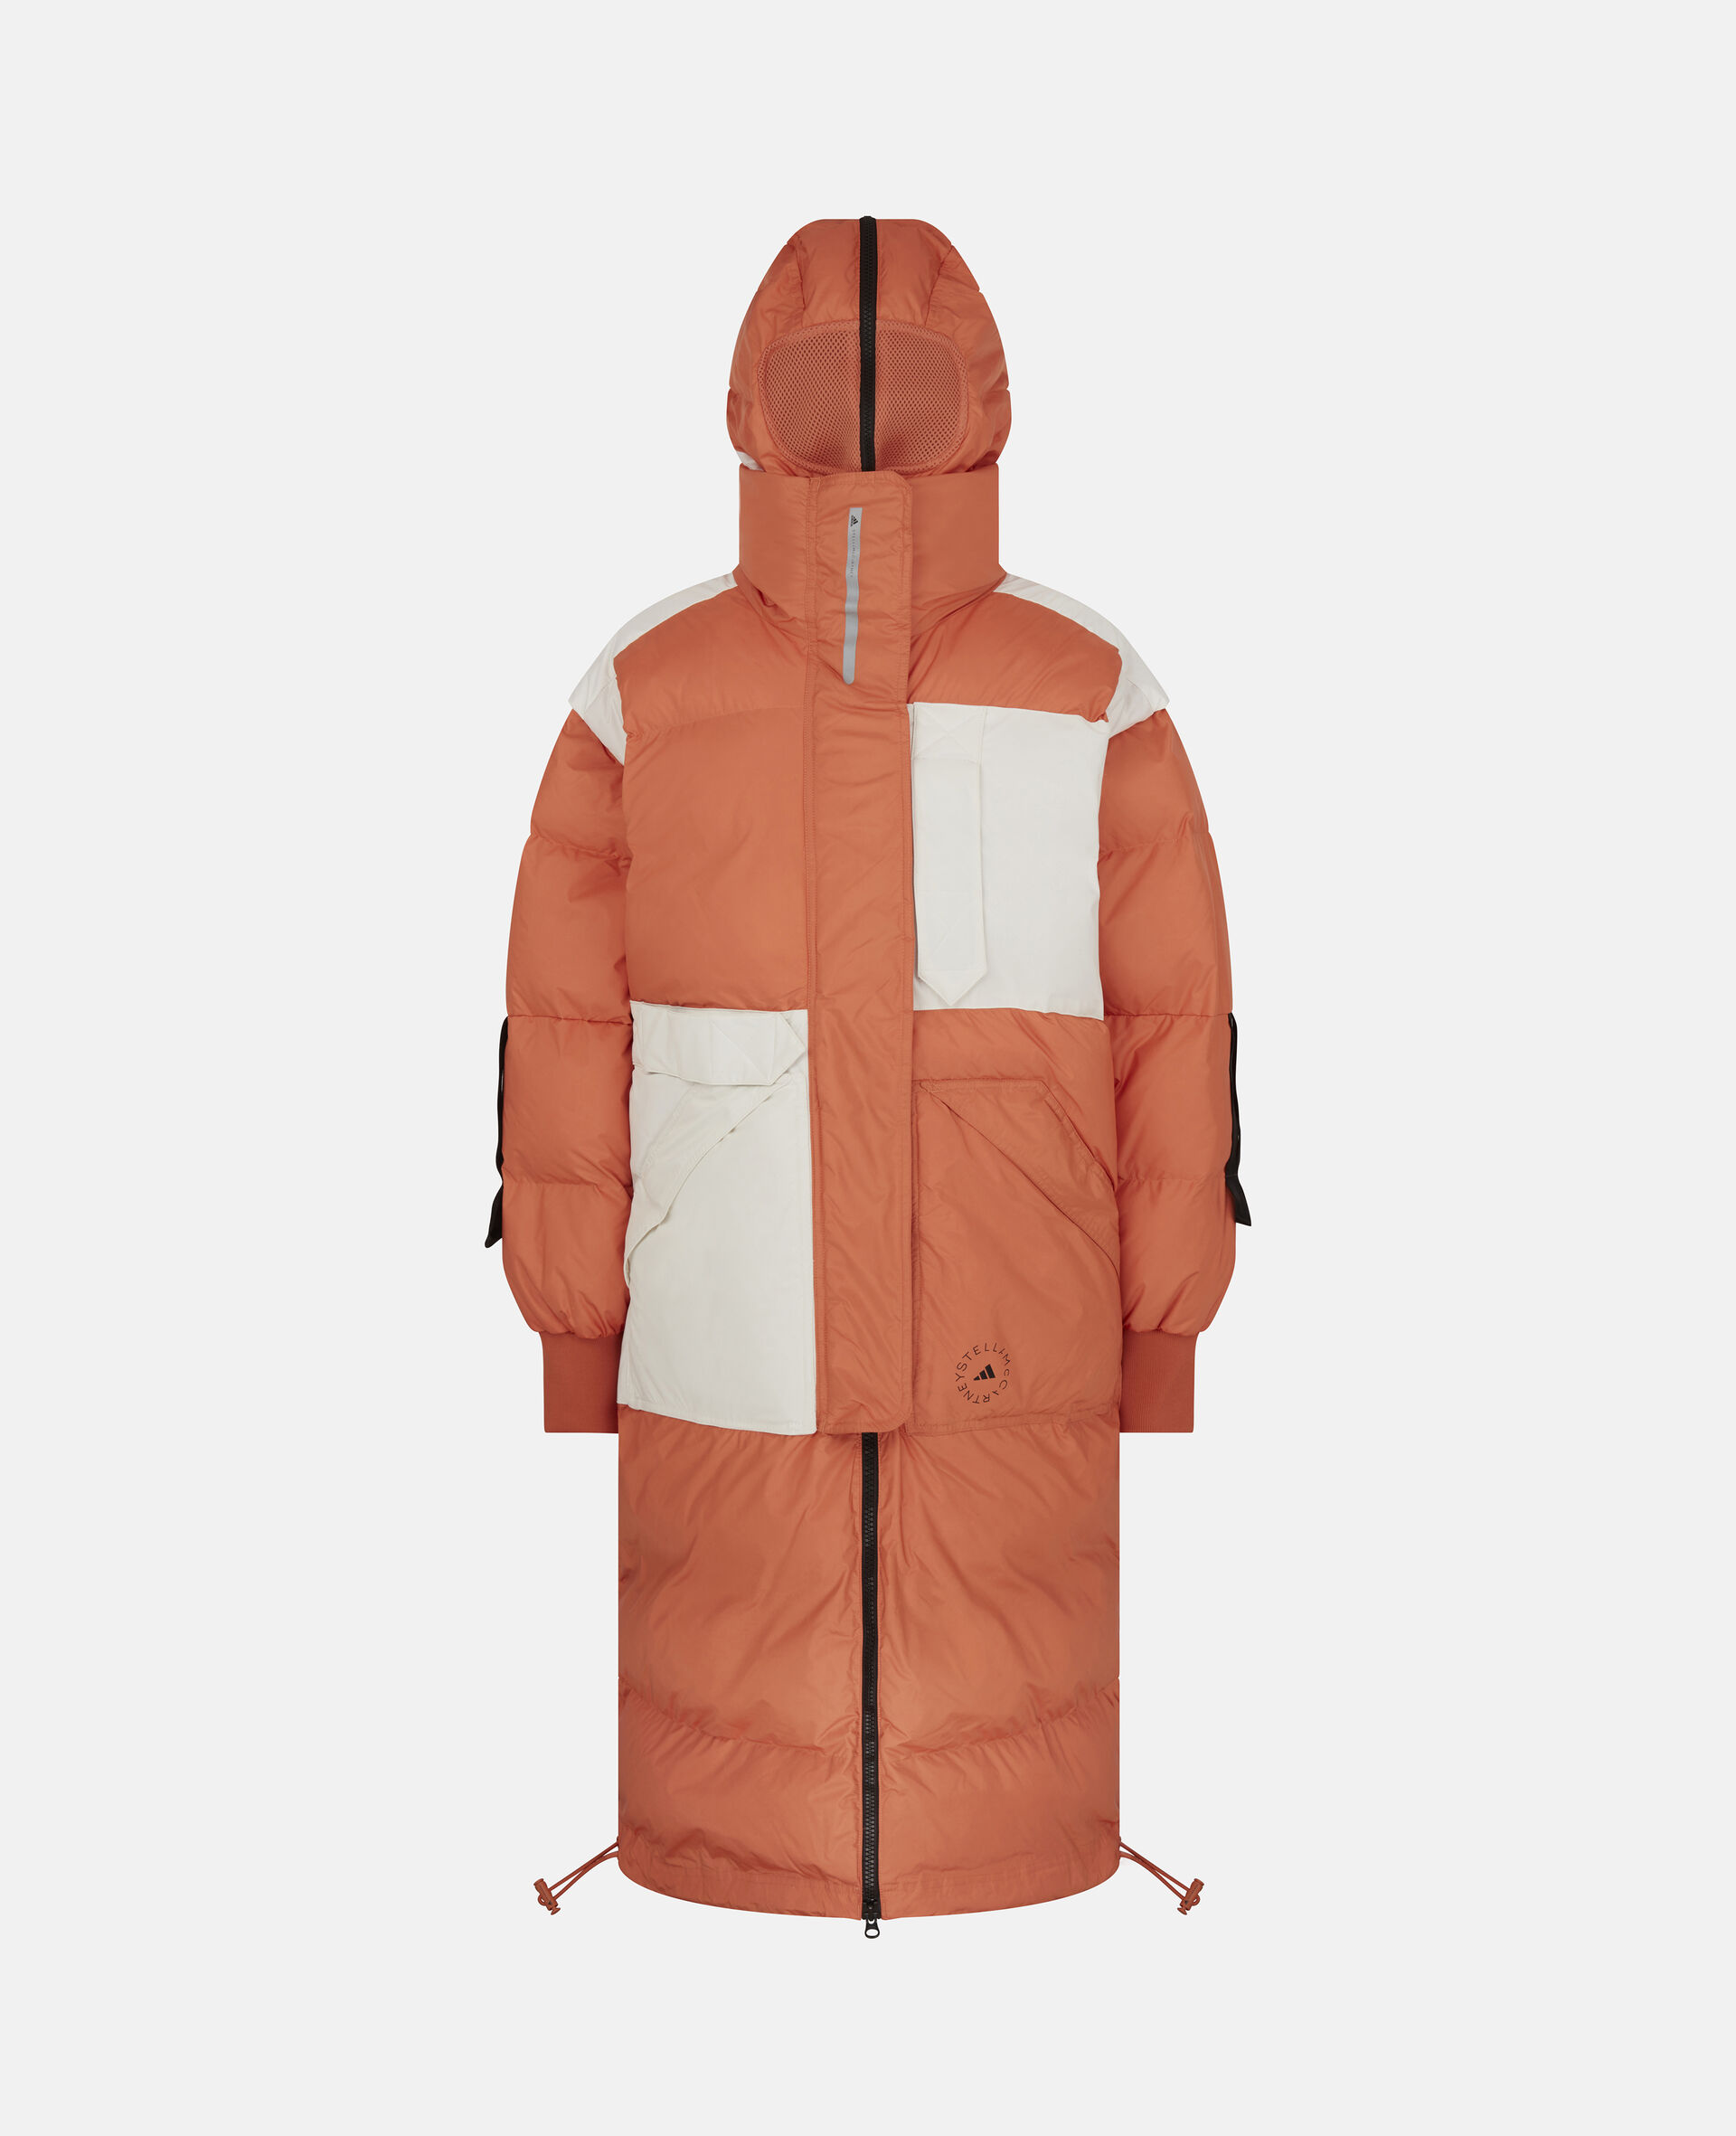 Dusted Clay and White Earth Protector Puffer-Orange-large image number 0